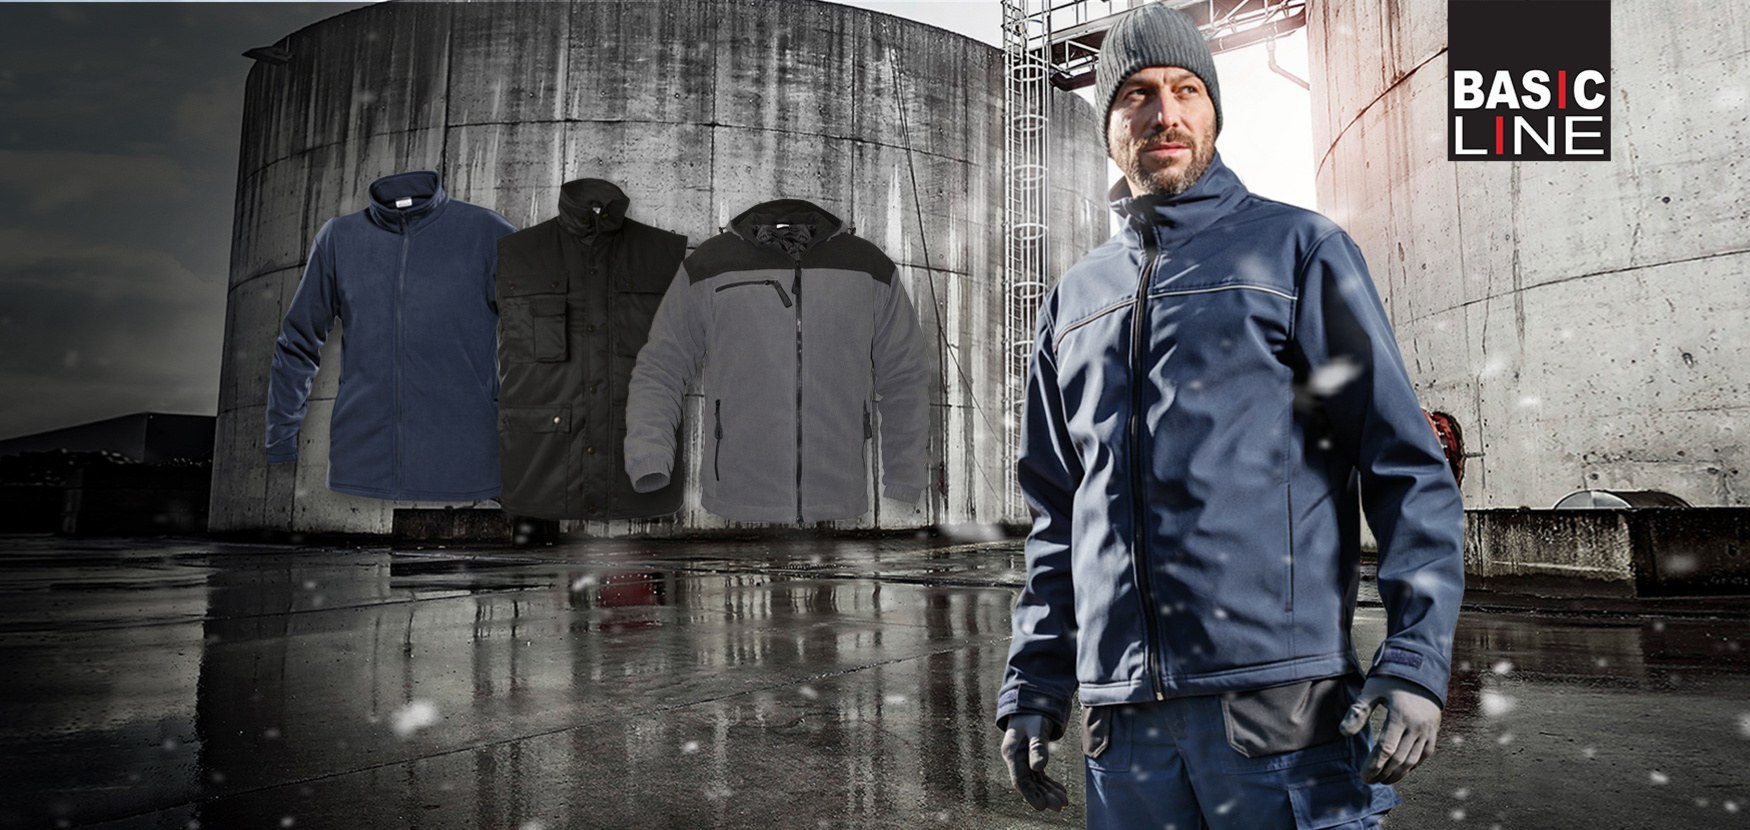 Shop WINTERPROOF WITH BASIC LINE - Keep warm in cold weather#Discover the collection